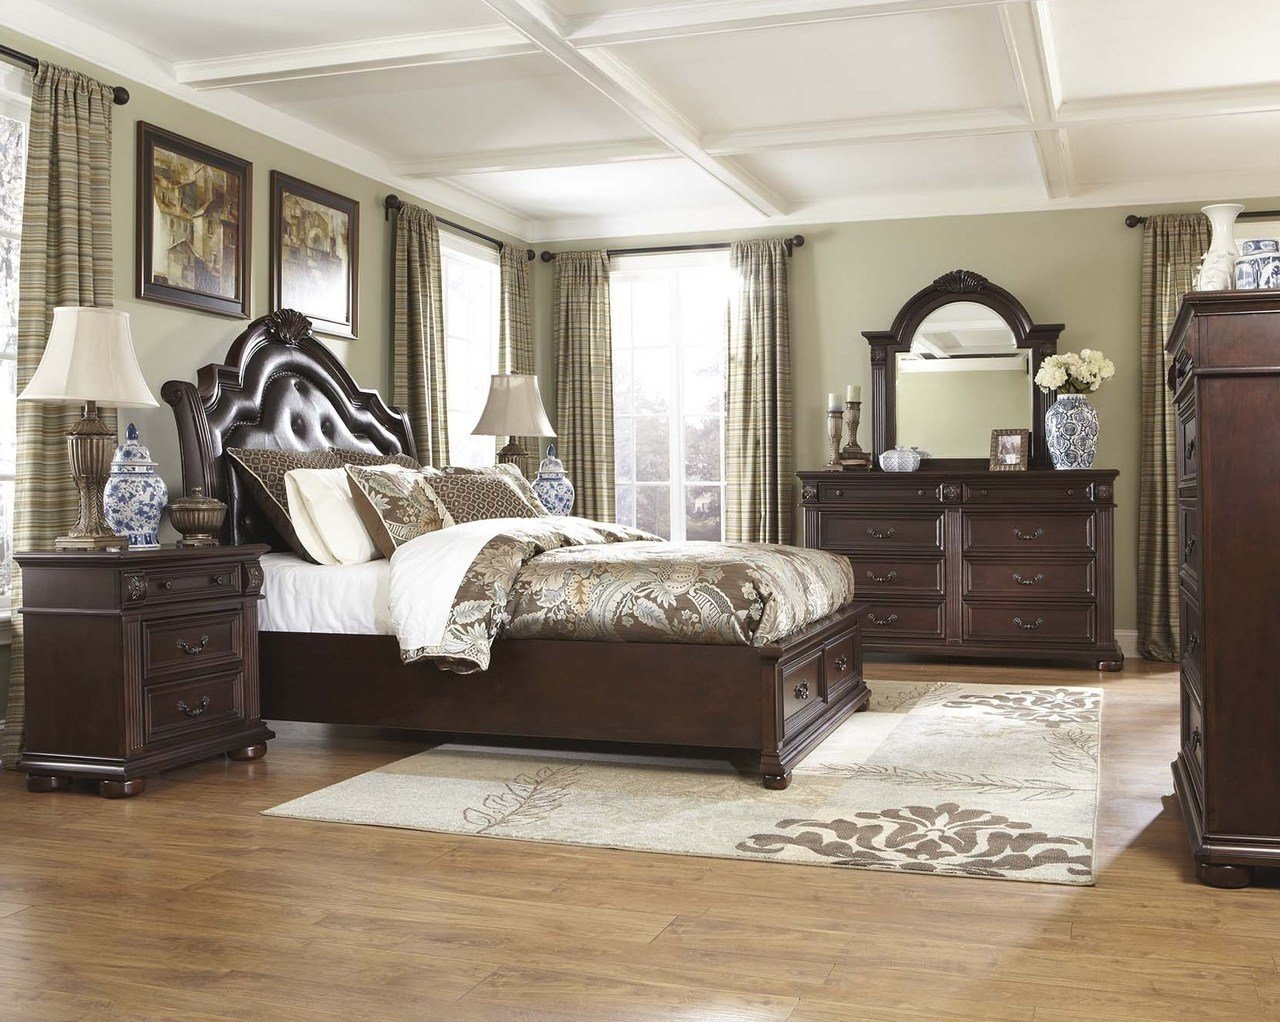 Best Bedroom Give Your Bedroom Cozy Nuance With Master Bedroom With Pictures